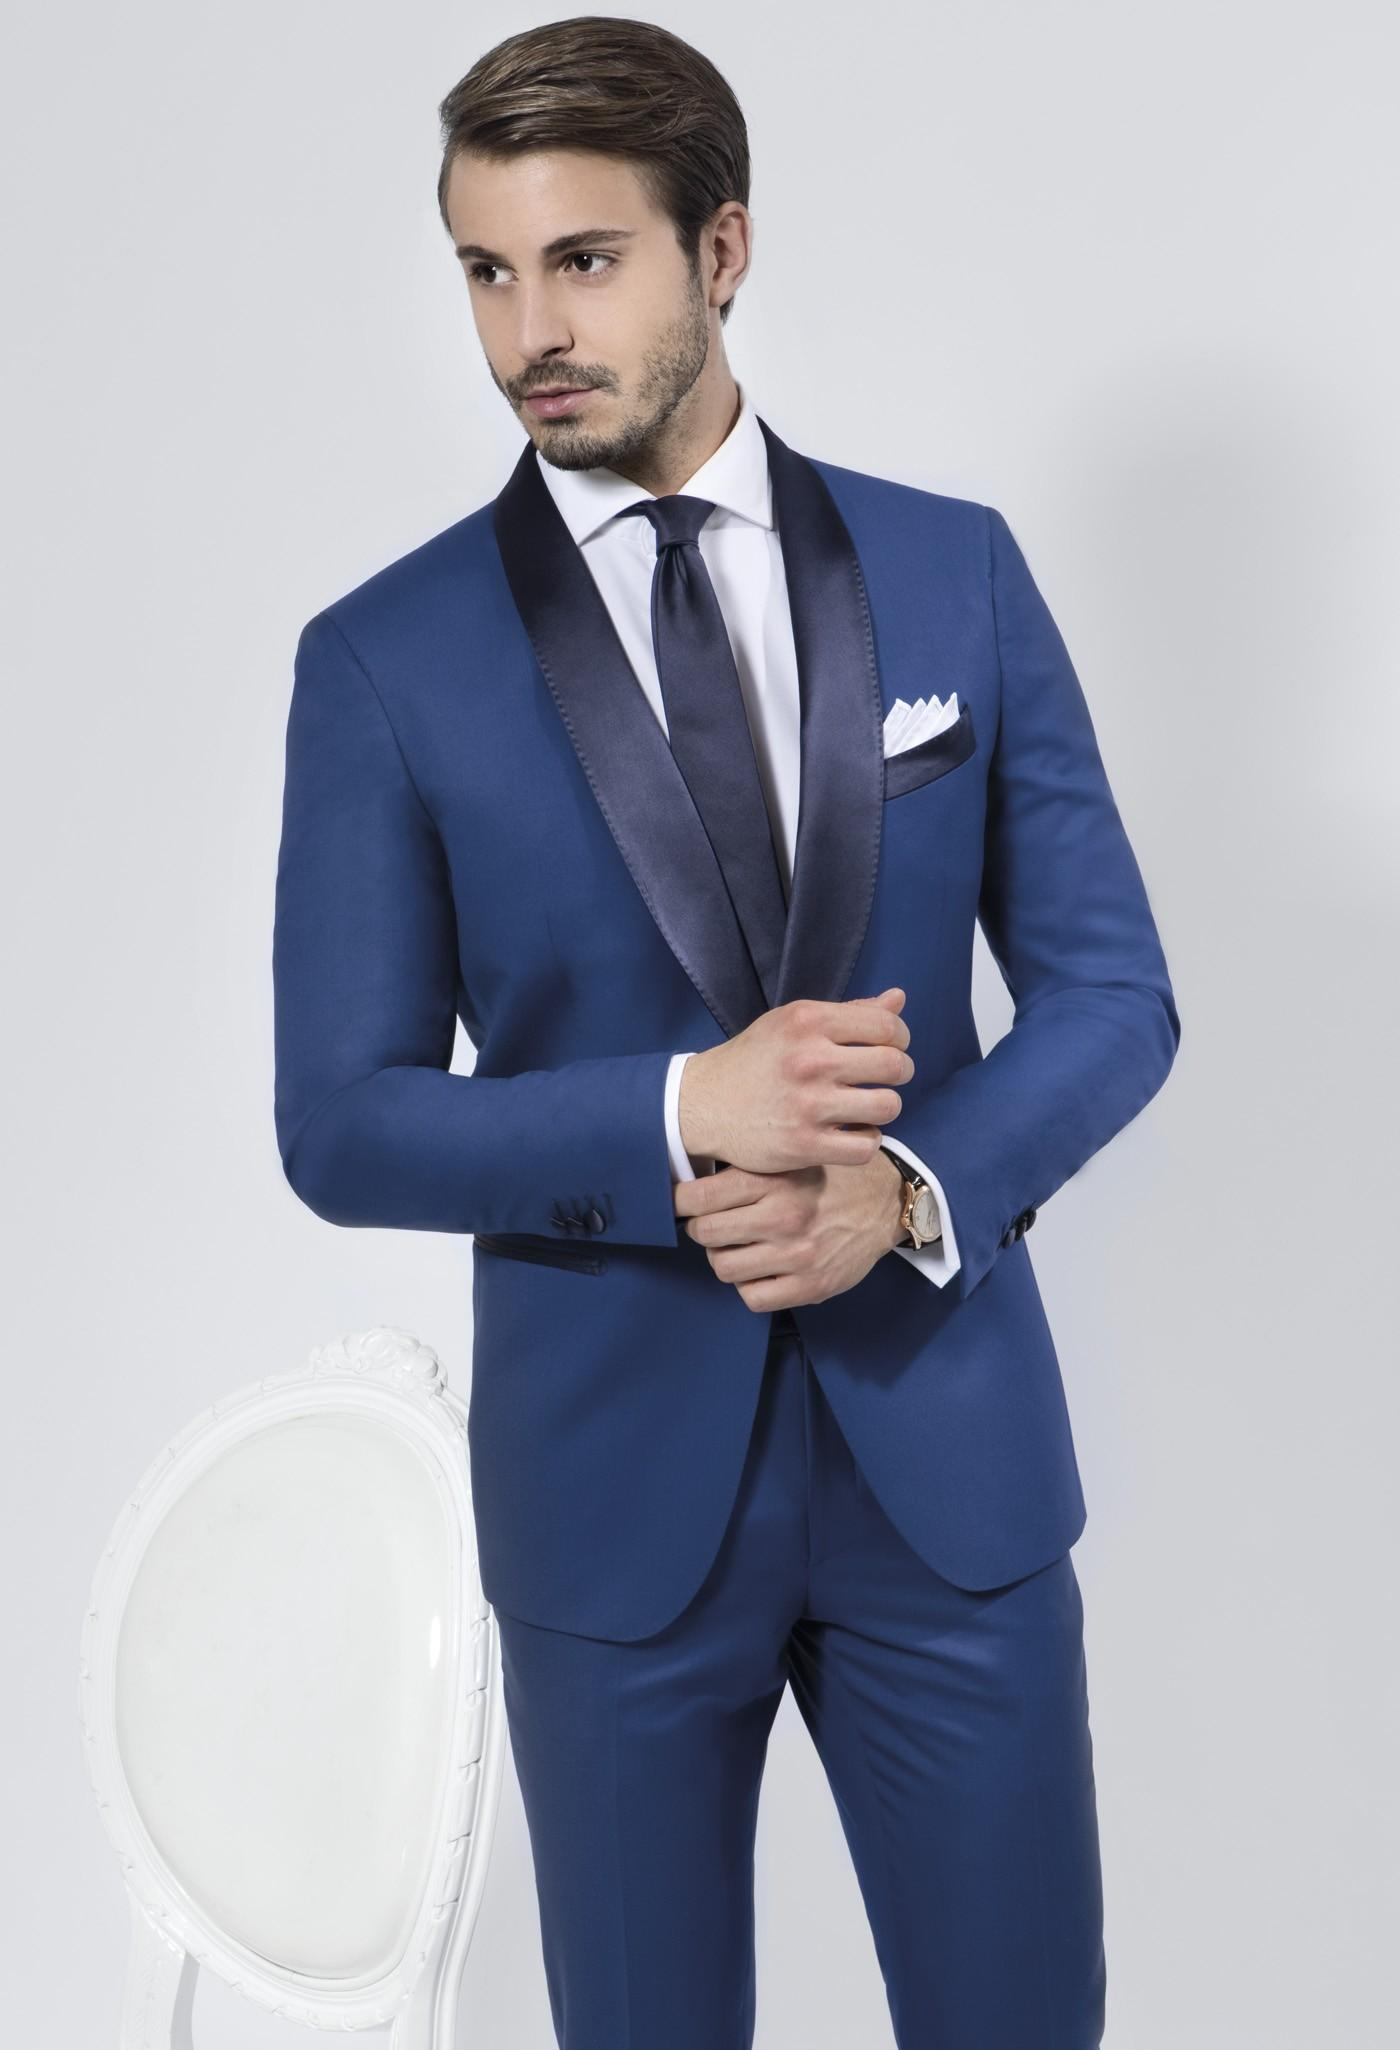 Prom Suits For Men Reviews | Prom Suits For Men Buying Guides on